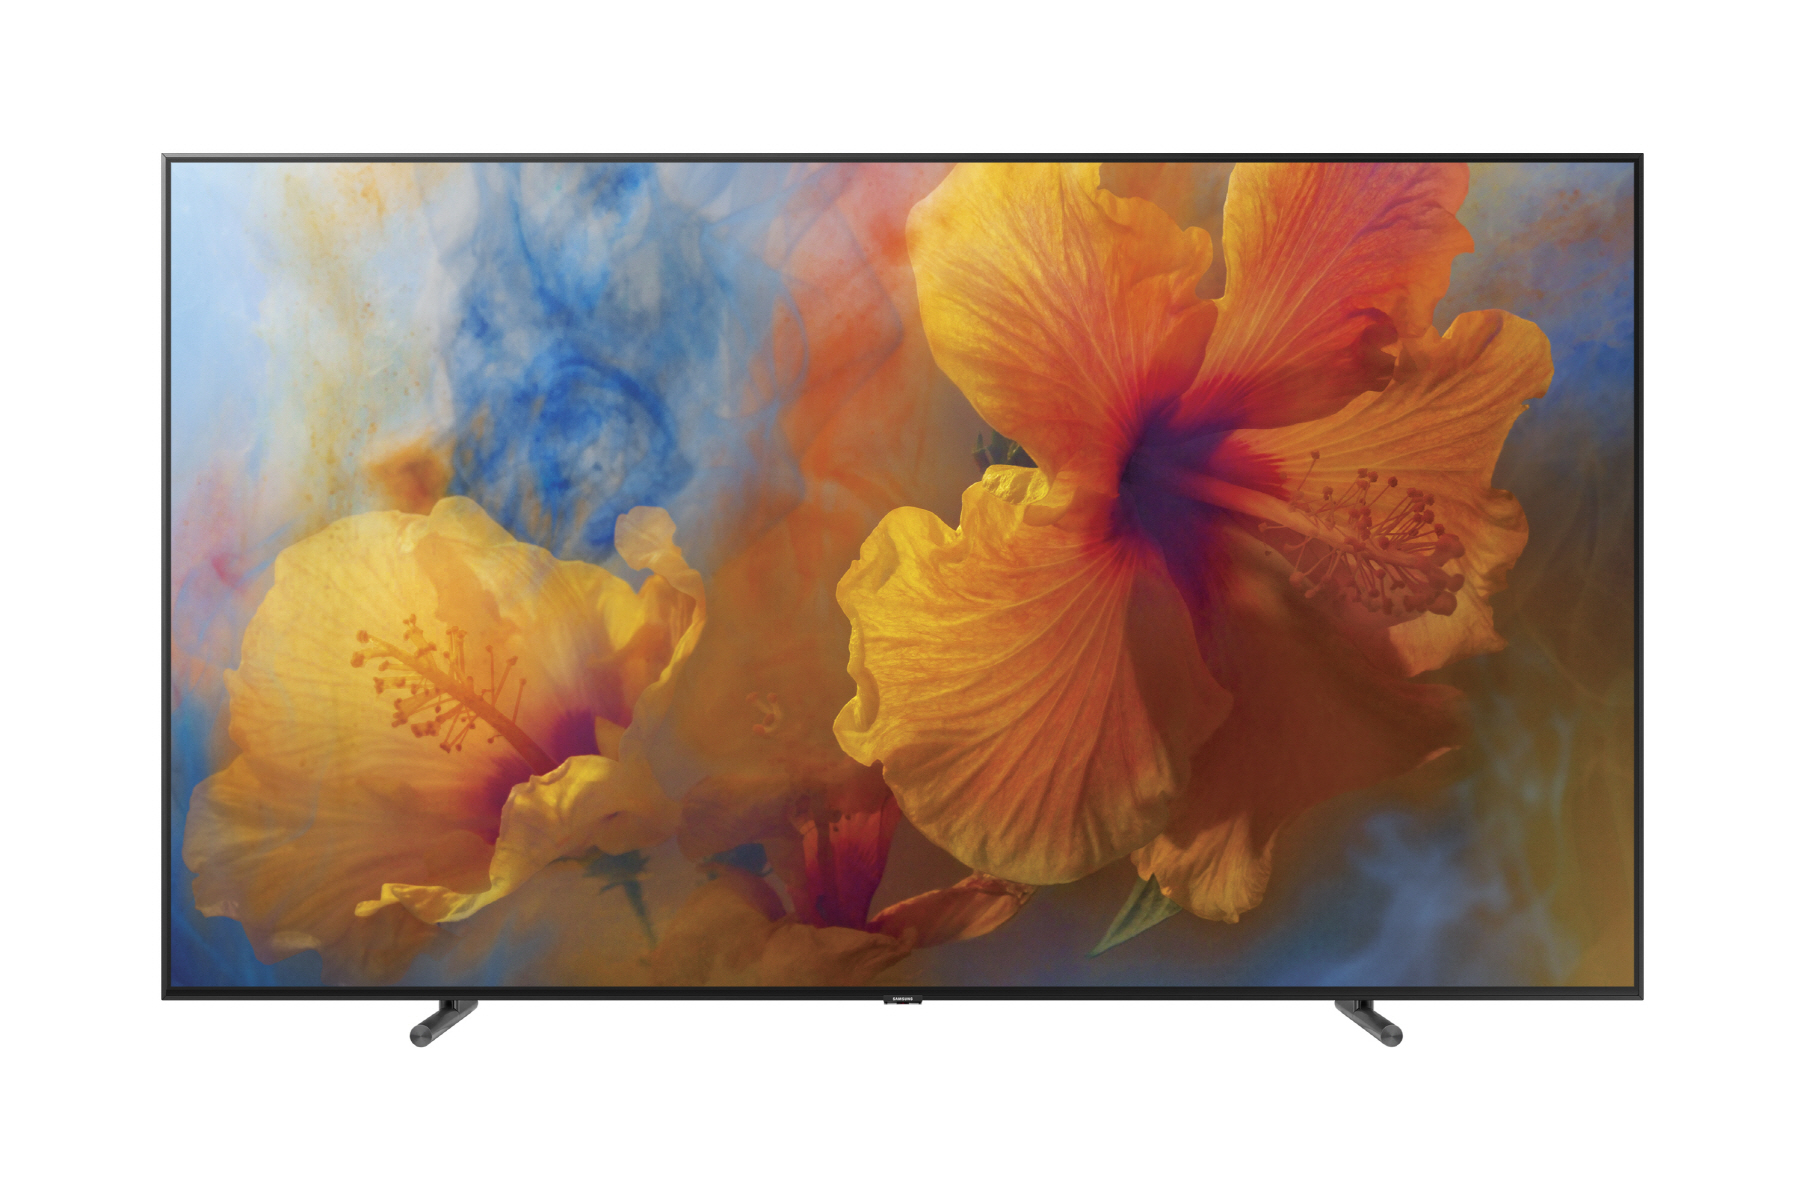 Samsung Q9 New 88″ Samsung QLED TV Has it All